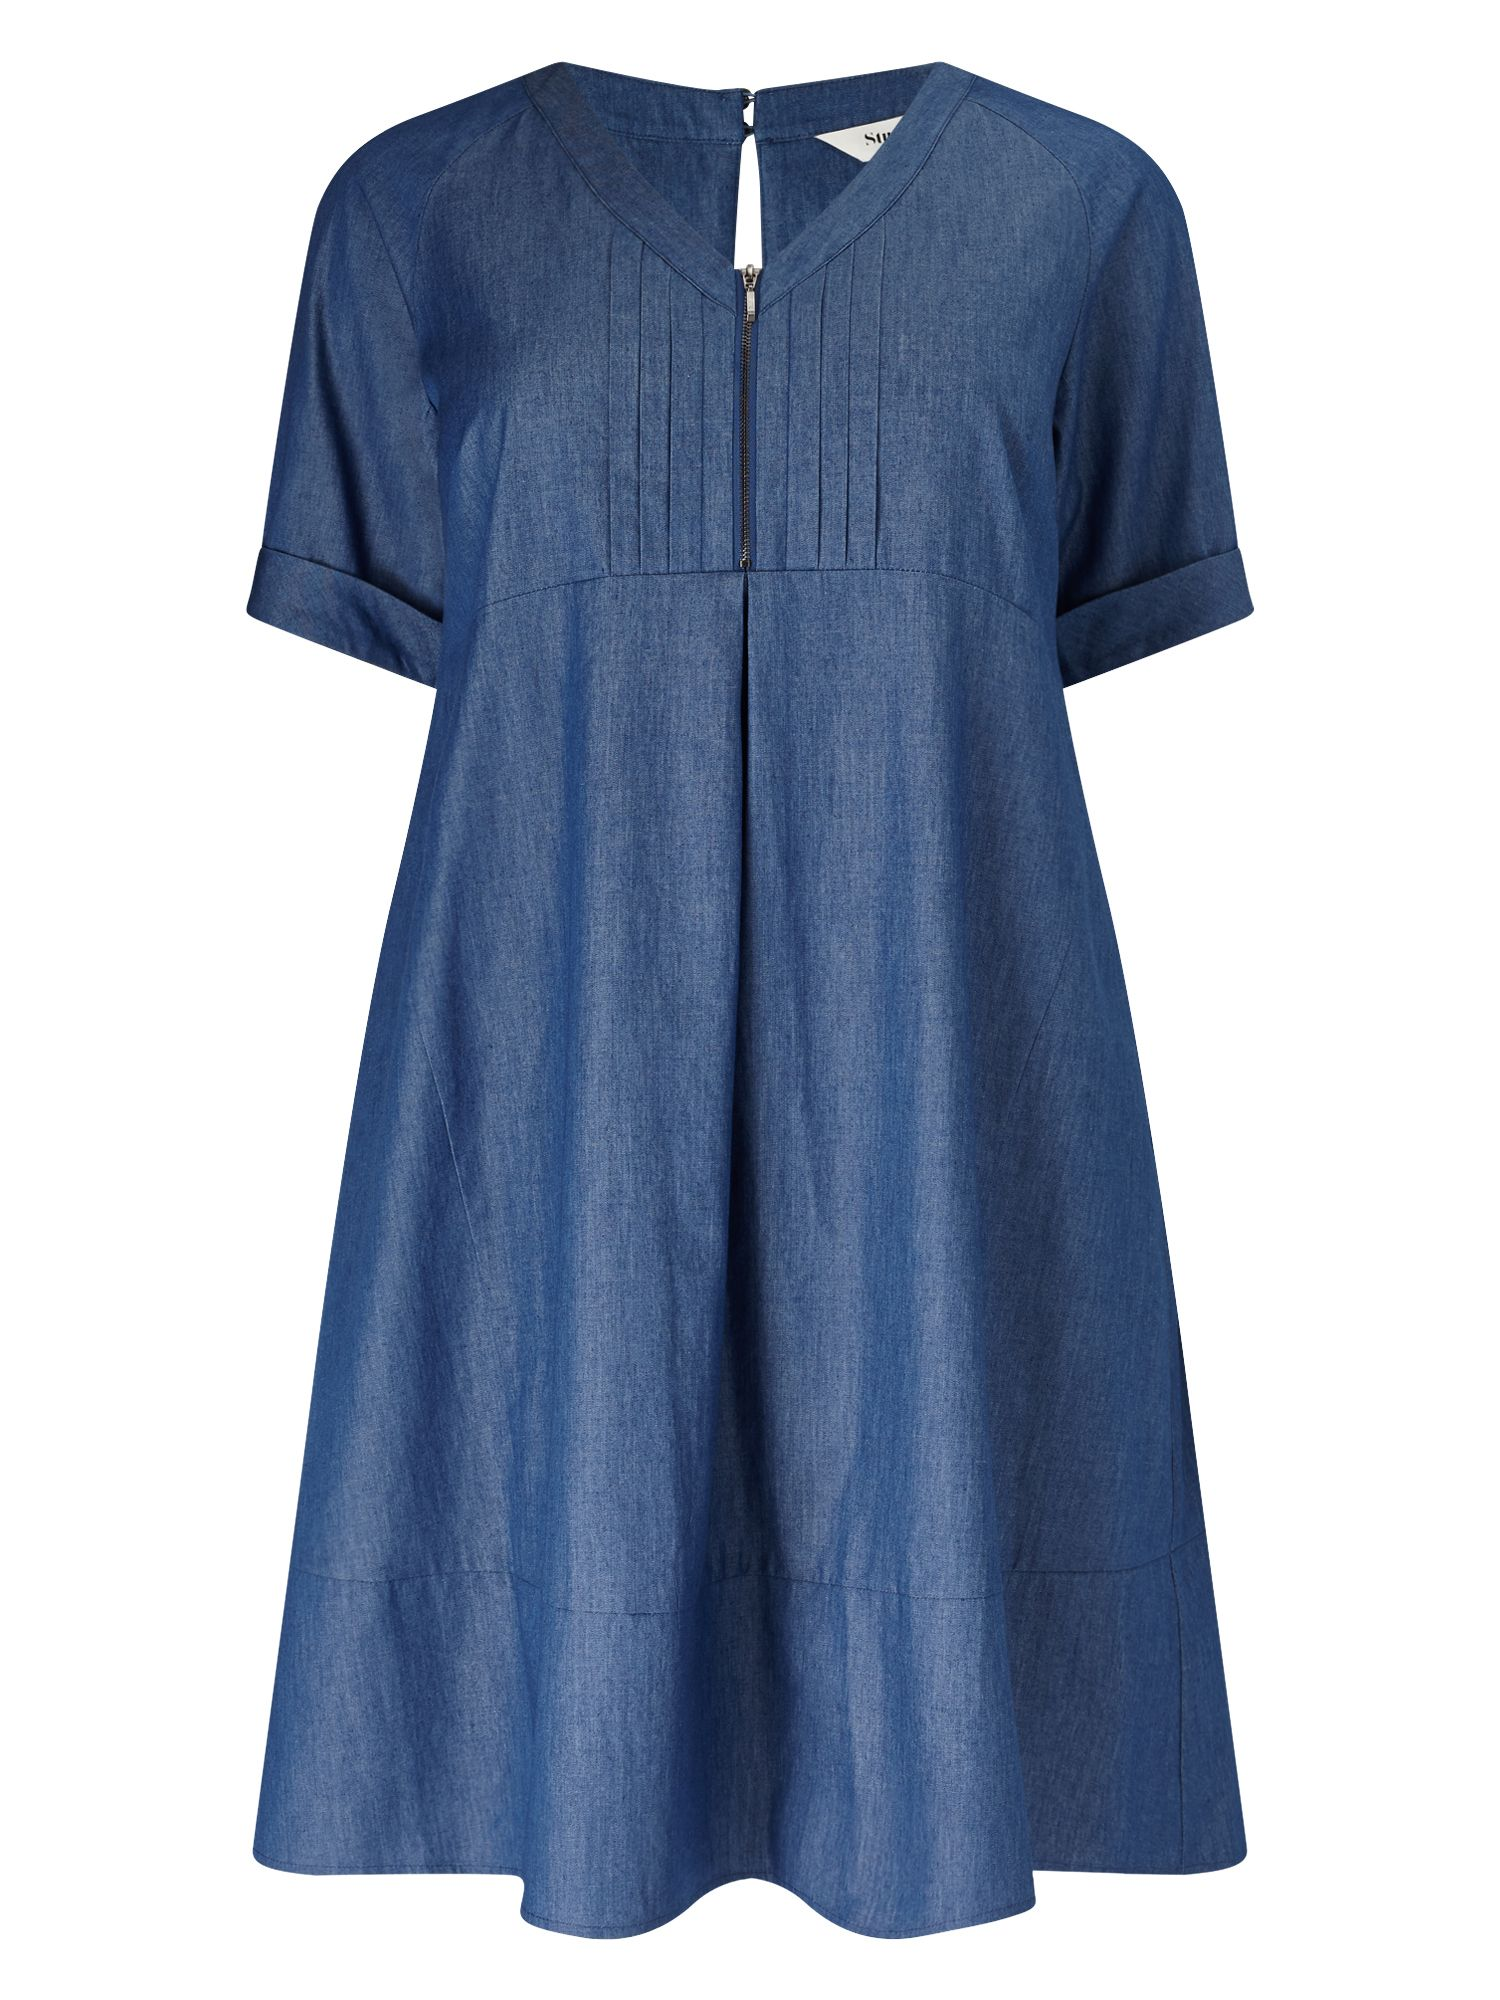 Studio 8 Kora Dress, Blue